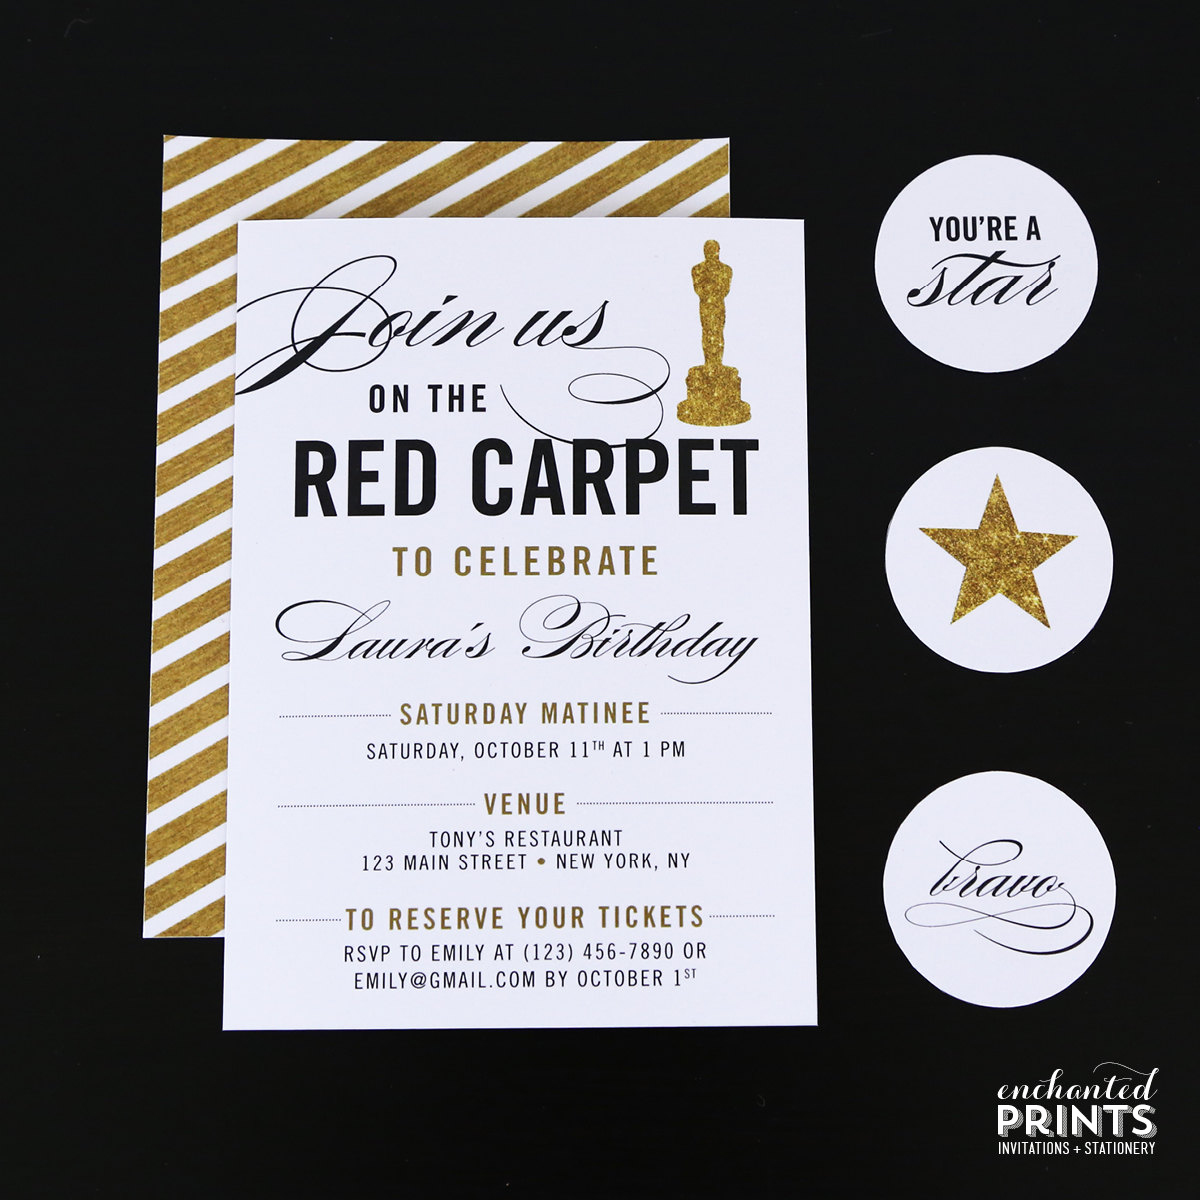 Red Carpet Invitation Template Free Unique Red Carpet Birthday Party Invitation Awards by Enchantedprints